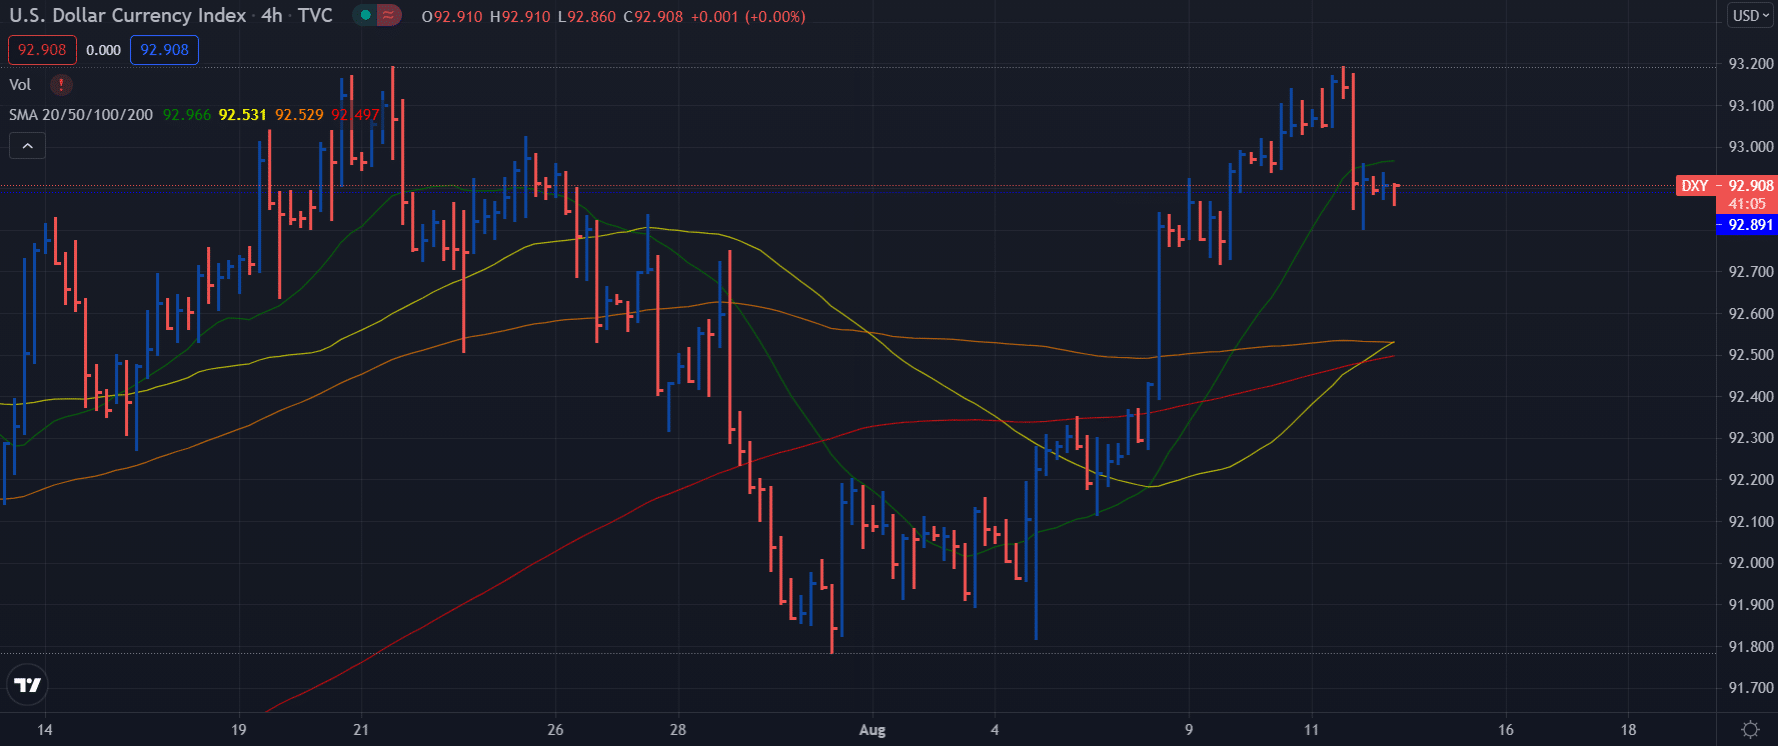 DXY Dollar Index 4-hour chart outlook